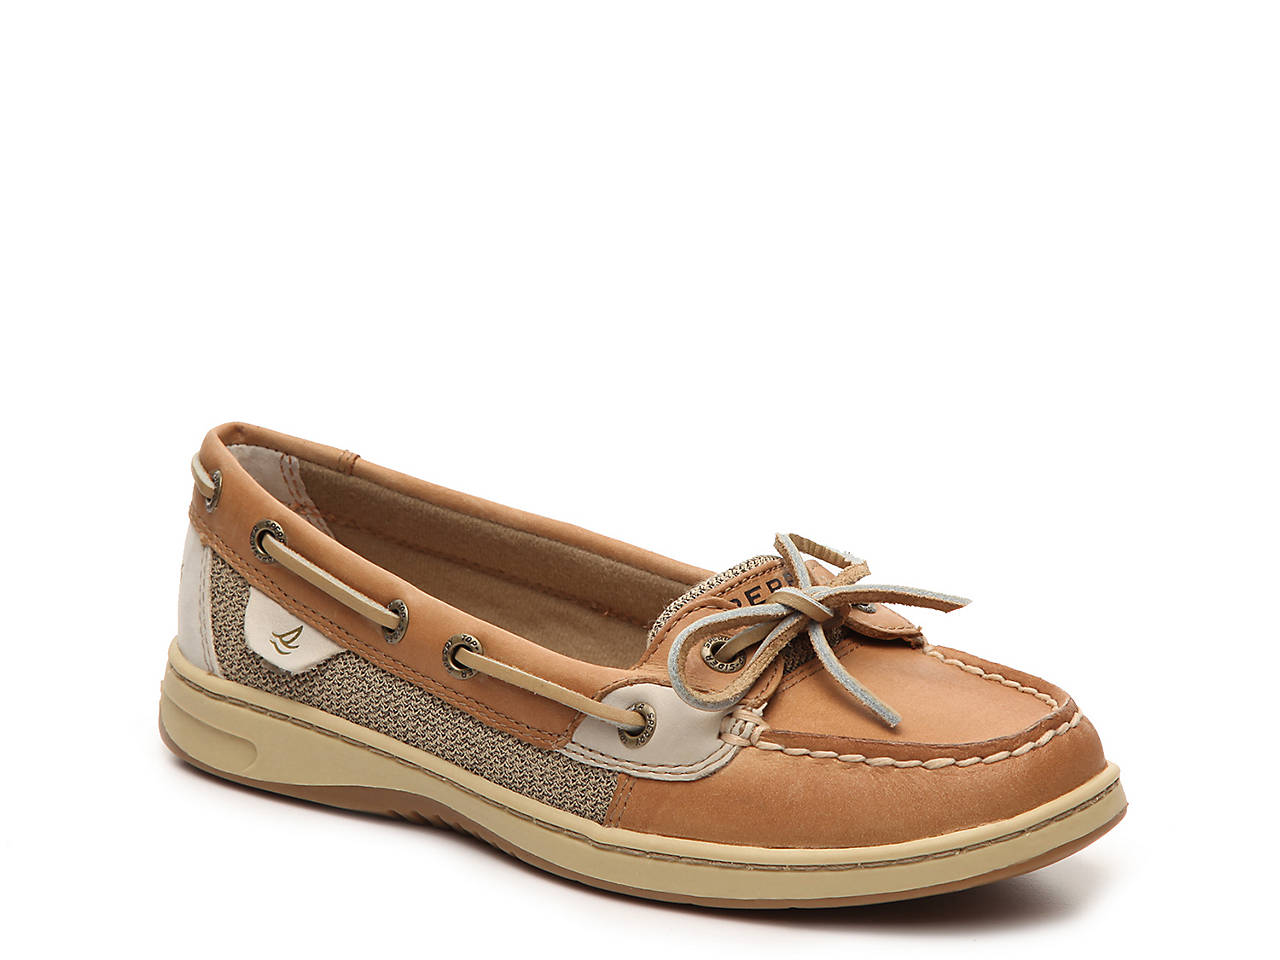 Sperry Top Sider Shoes Philippines